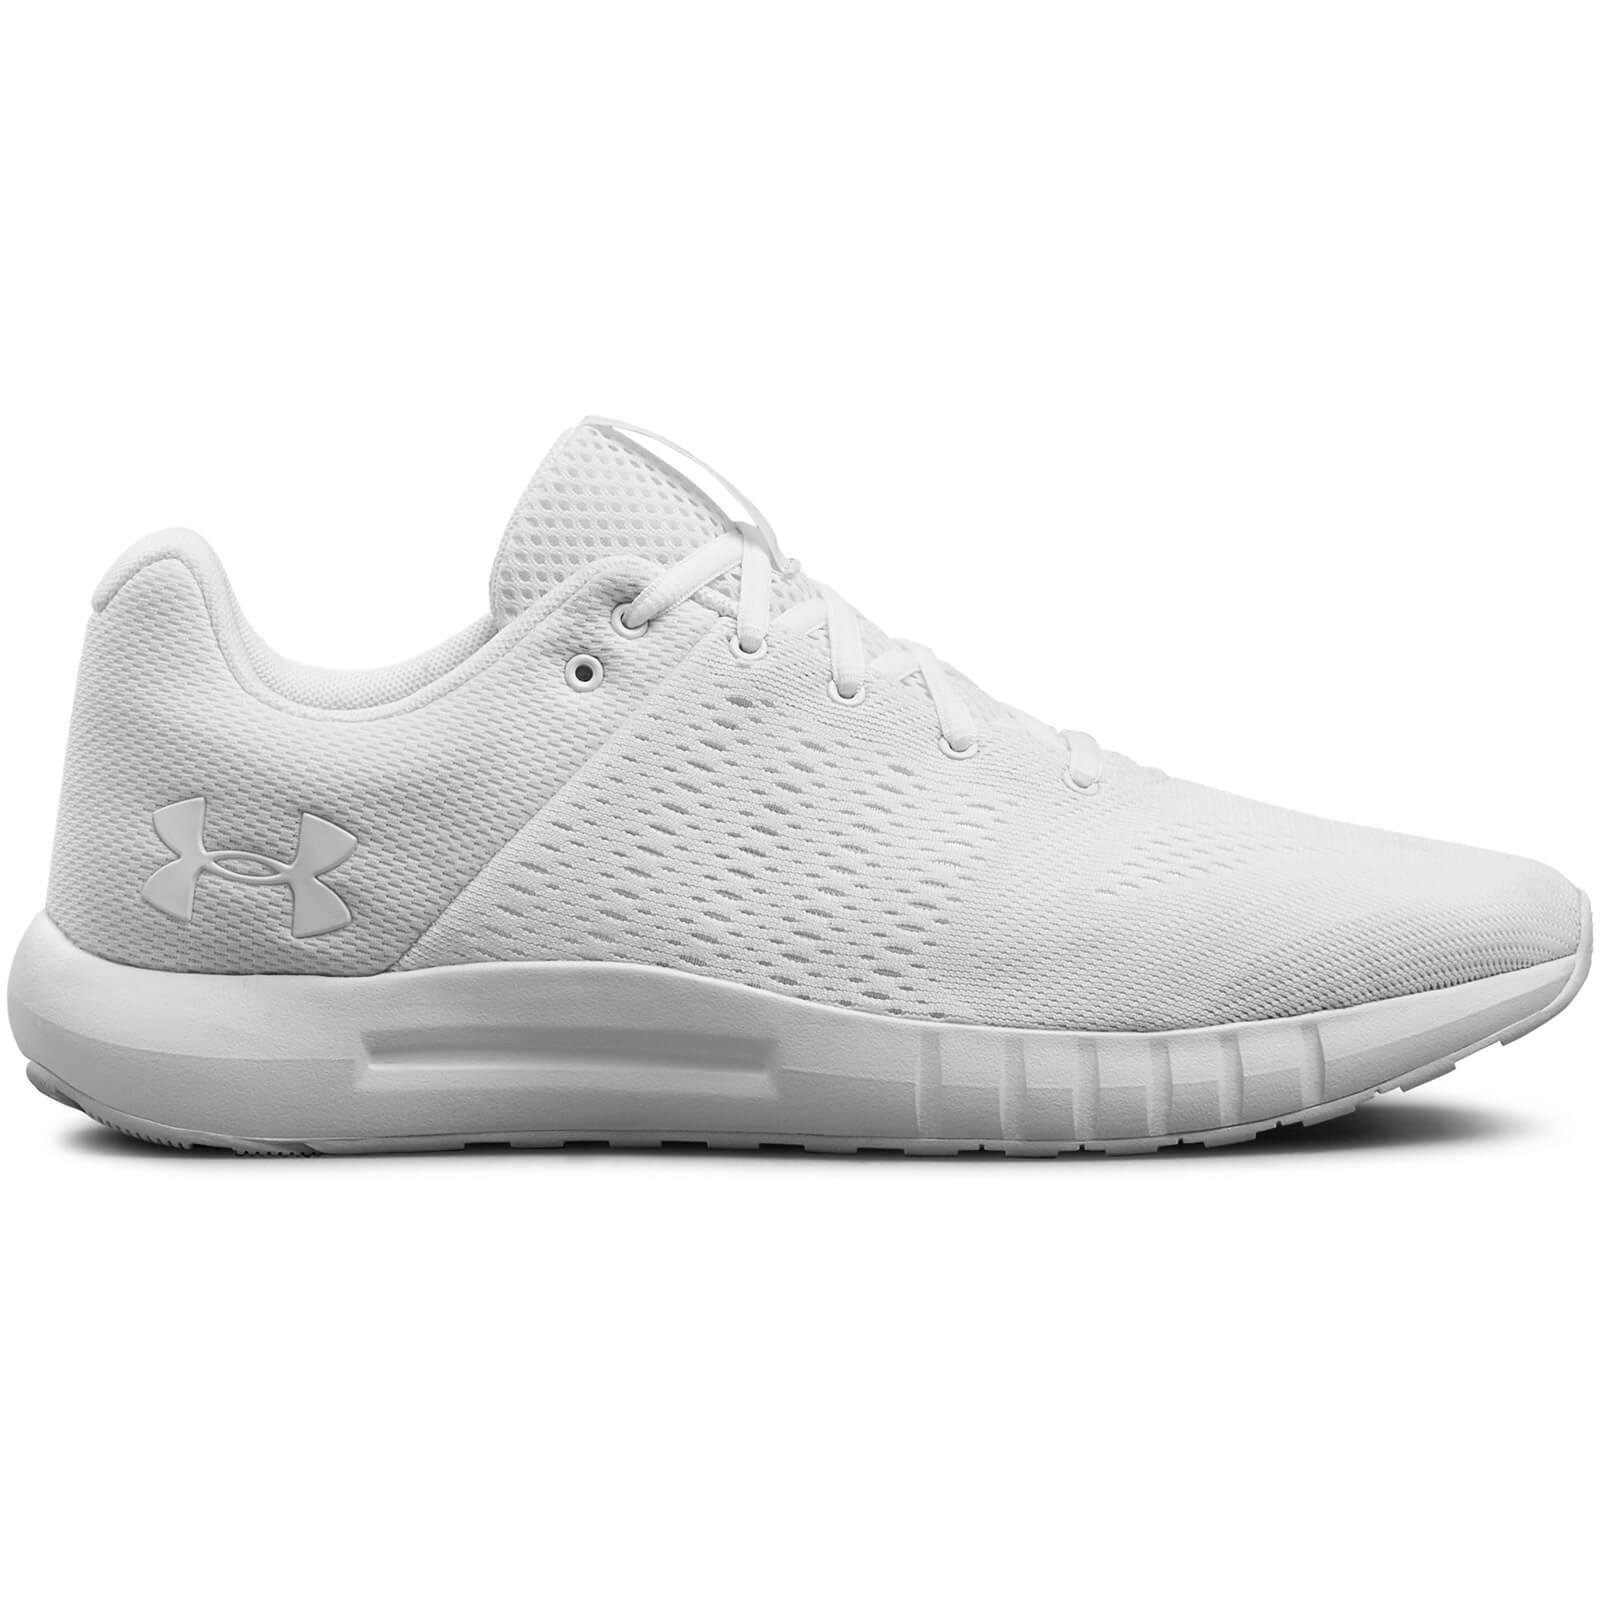 Under Armour Men's Micro G Pursuit Running Shoes - Grey/White - US 10/UK 9 - White